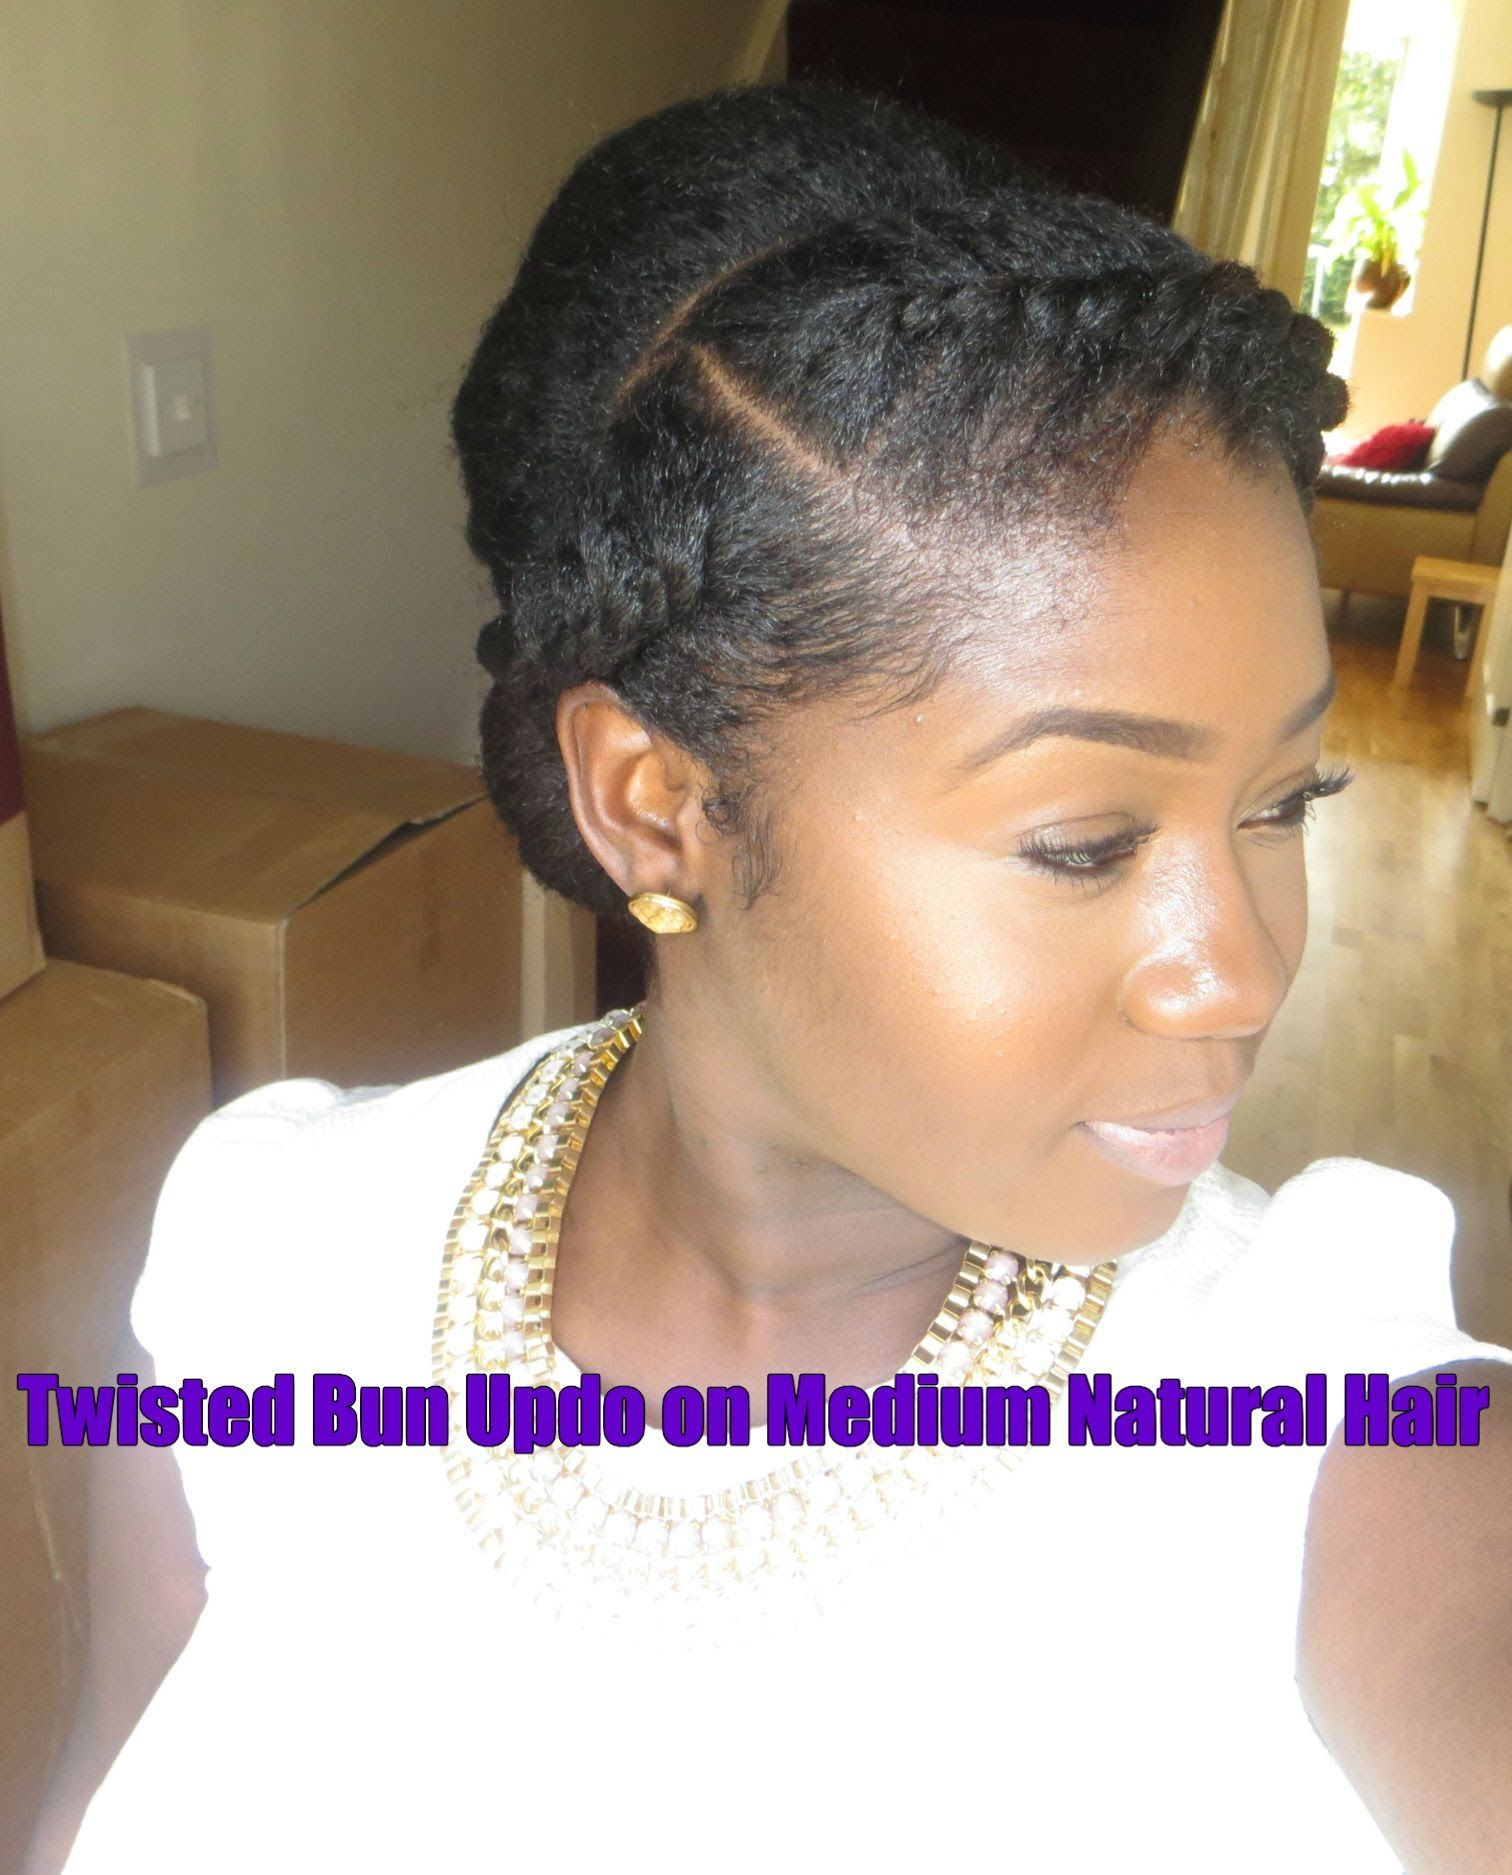 19 Twisted Updo on Medium Natural Hair Hair